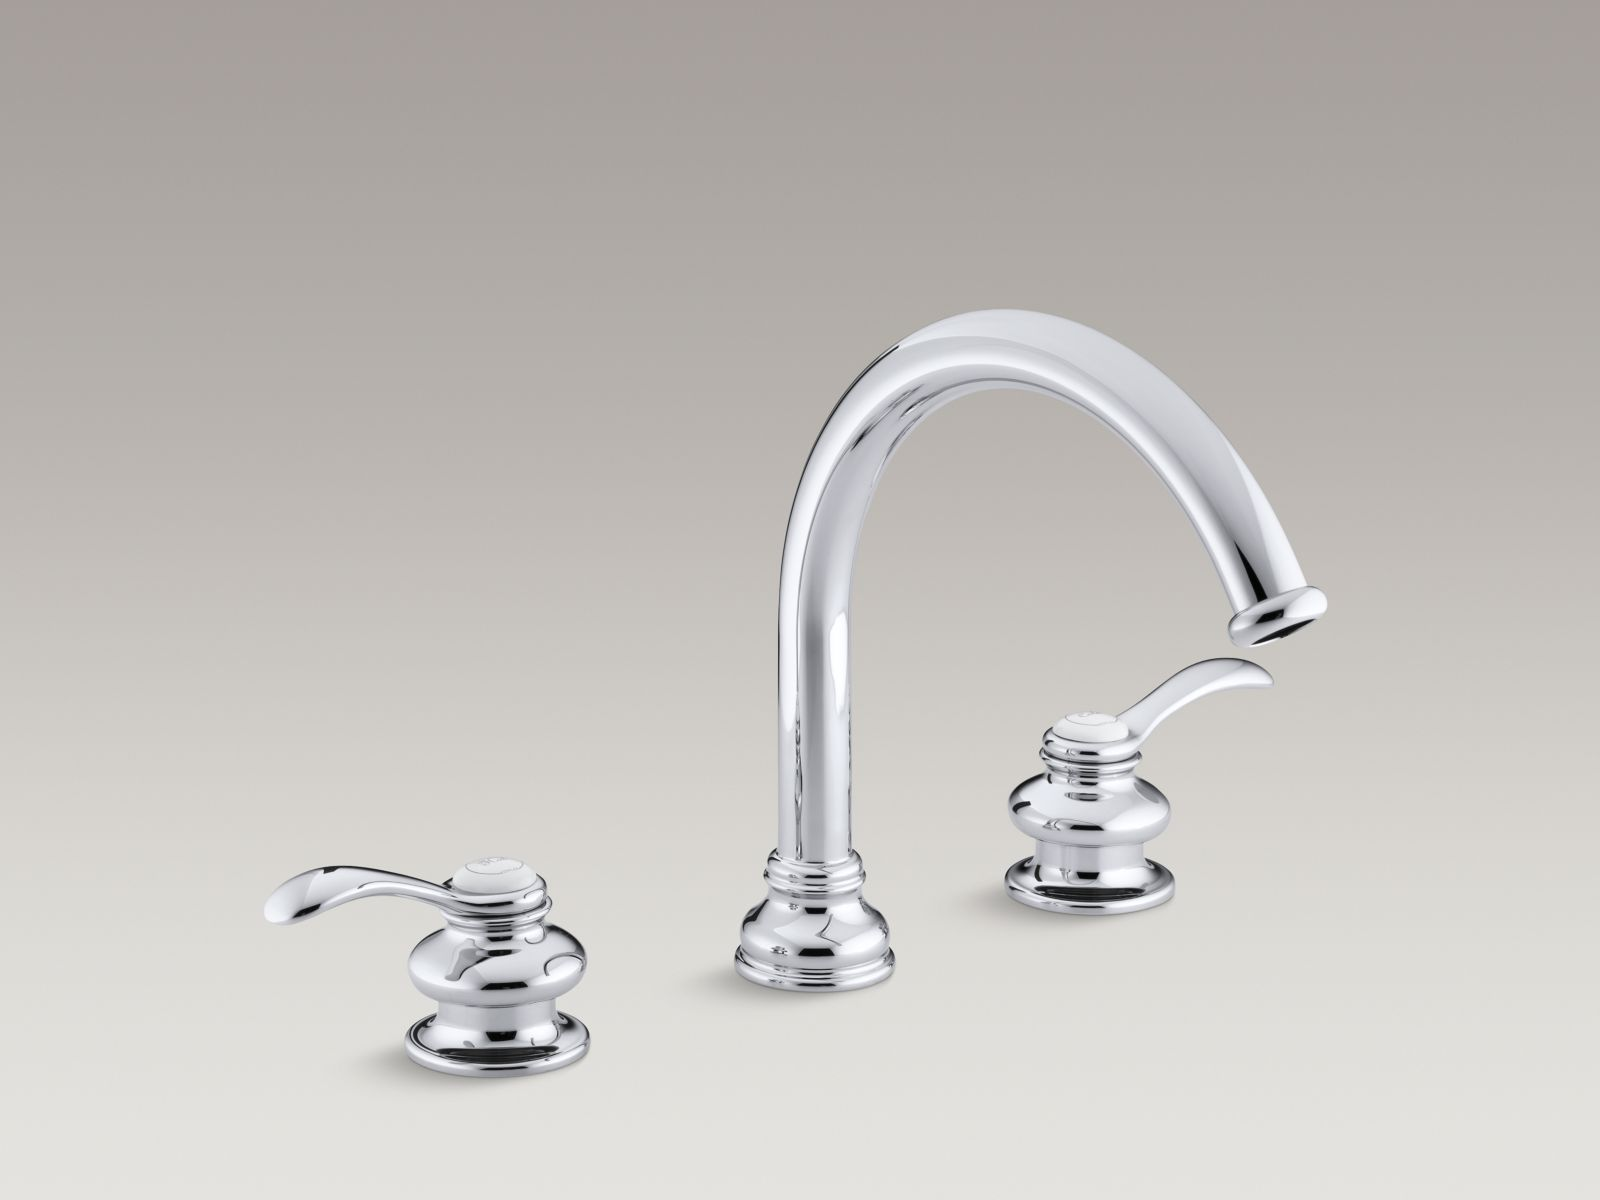 "Kohler Fairfax® K-T12885-4-CP Deck-mount bath faucet trim with lever handles and traditional 8-7/8"" non-diverter slip-fit spout, valve not included Polished Chrome"